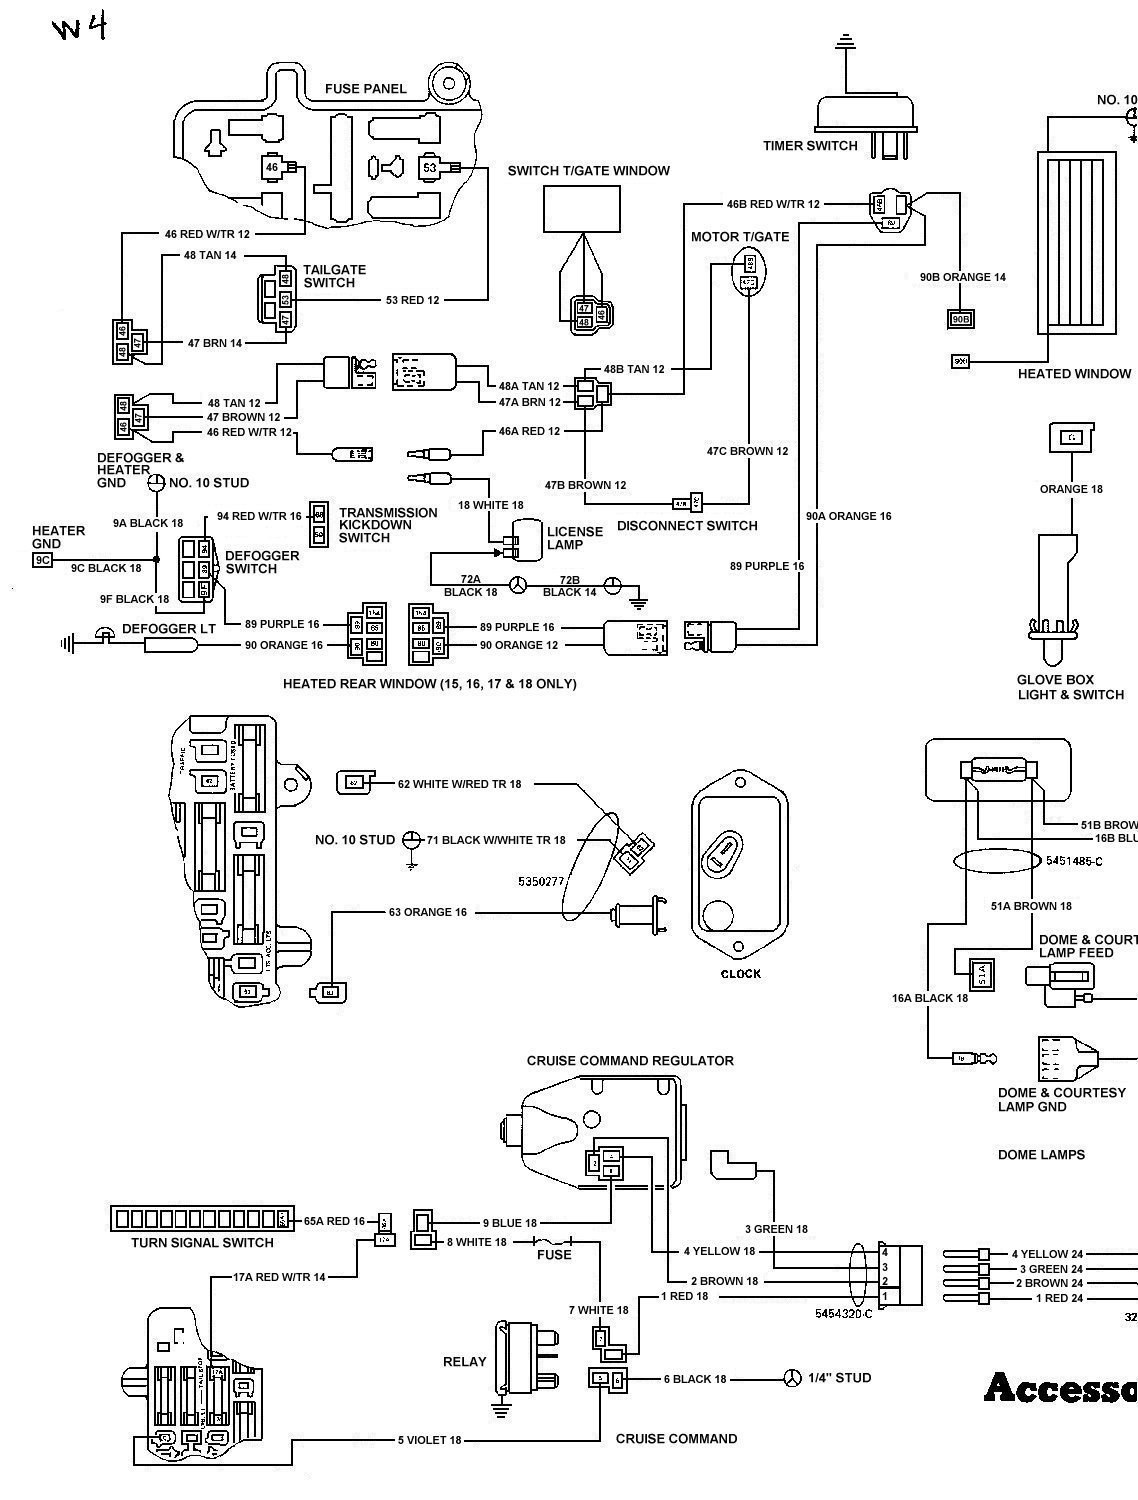 78_FSJ_WiringDiagramPage4 tom 'oljeep' collins fsj wiring page 1978 Corvette Wiring Diagram at readyjetset.co